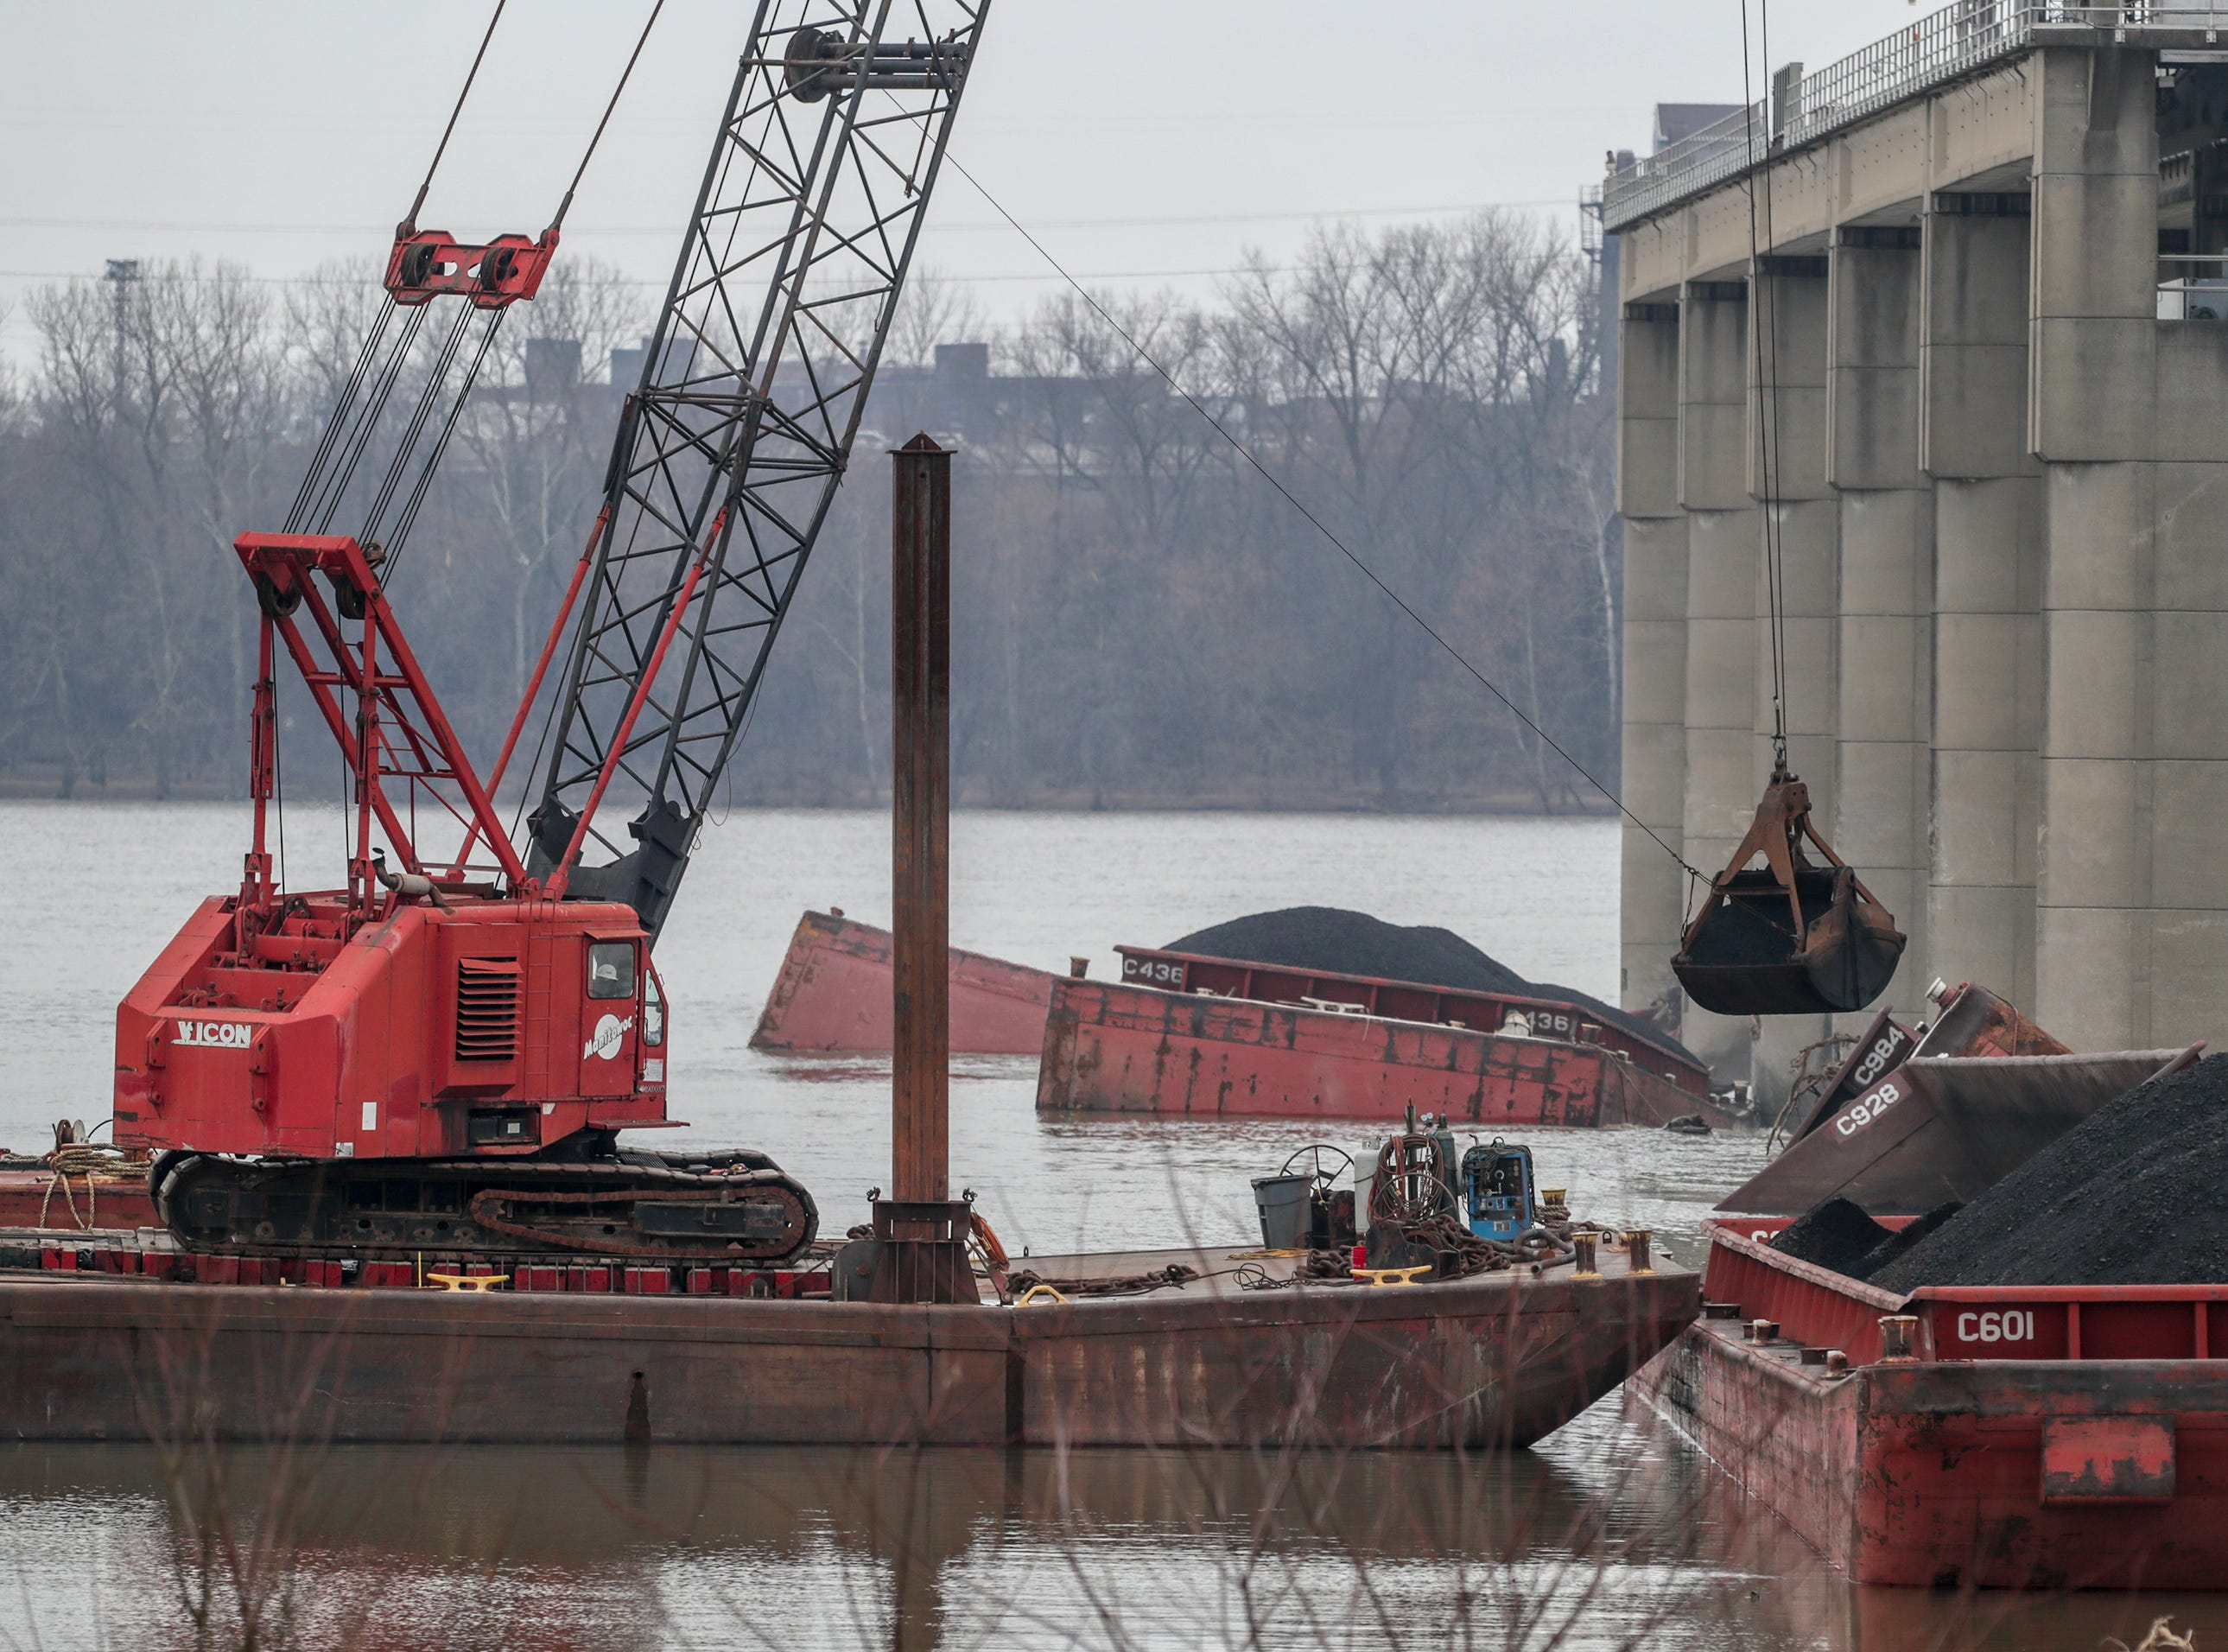 Crews are making progress clearing coal-laden barges from the dam and spillway on the Ohio River. Two barges have been removed and work has begun on a third.